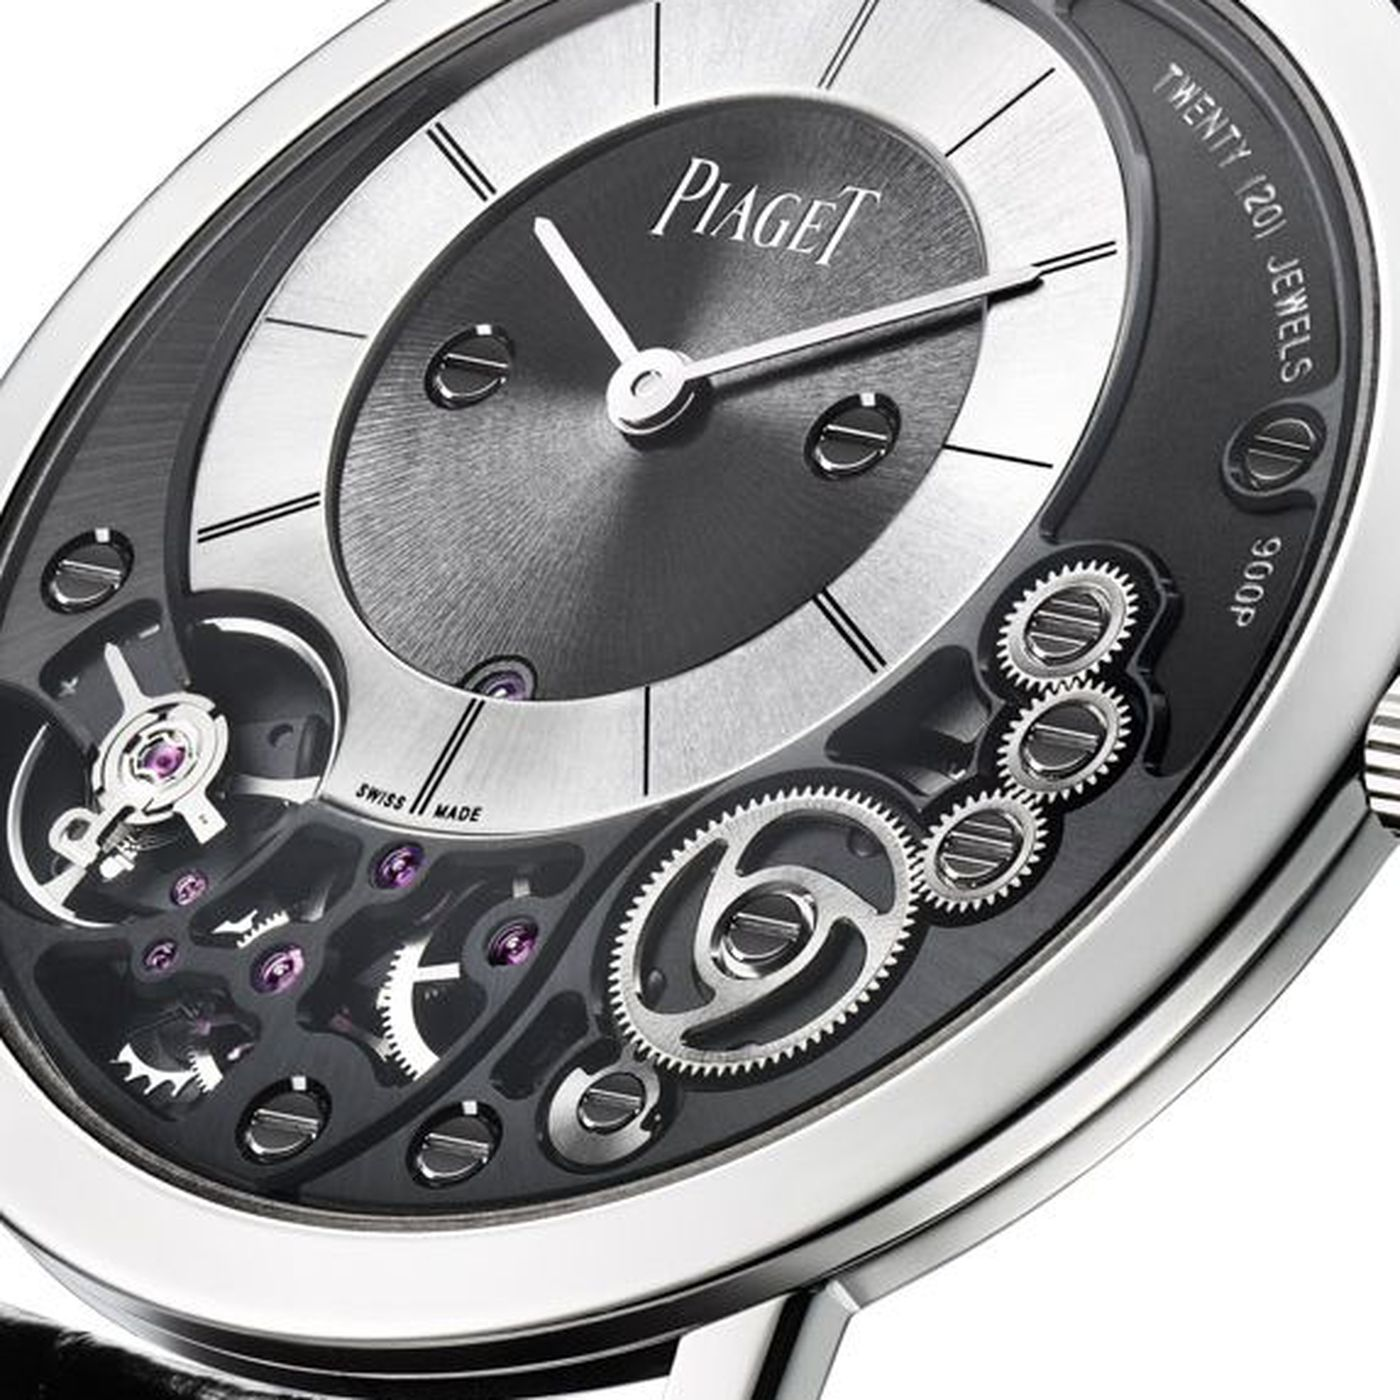 watches piaget scale watch polo crop product the subsampling upscale s shop jewellery steel editor chronograph in false